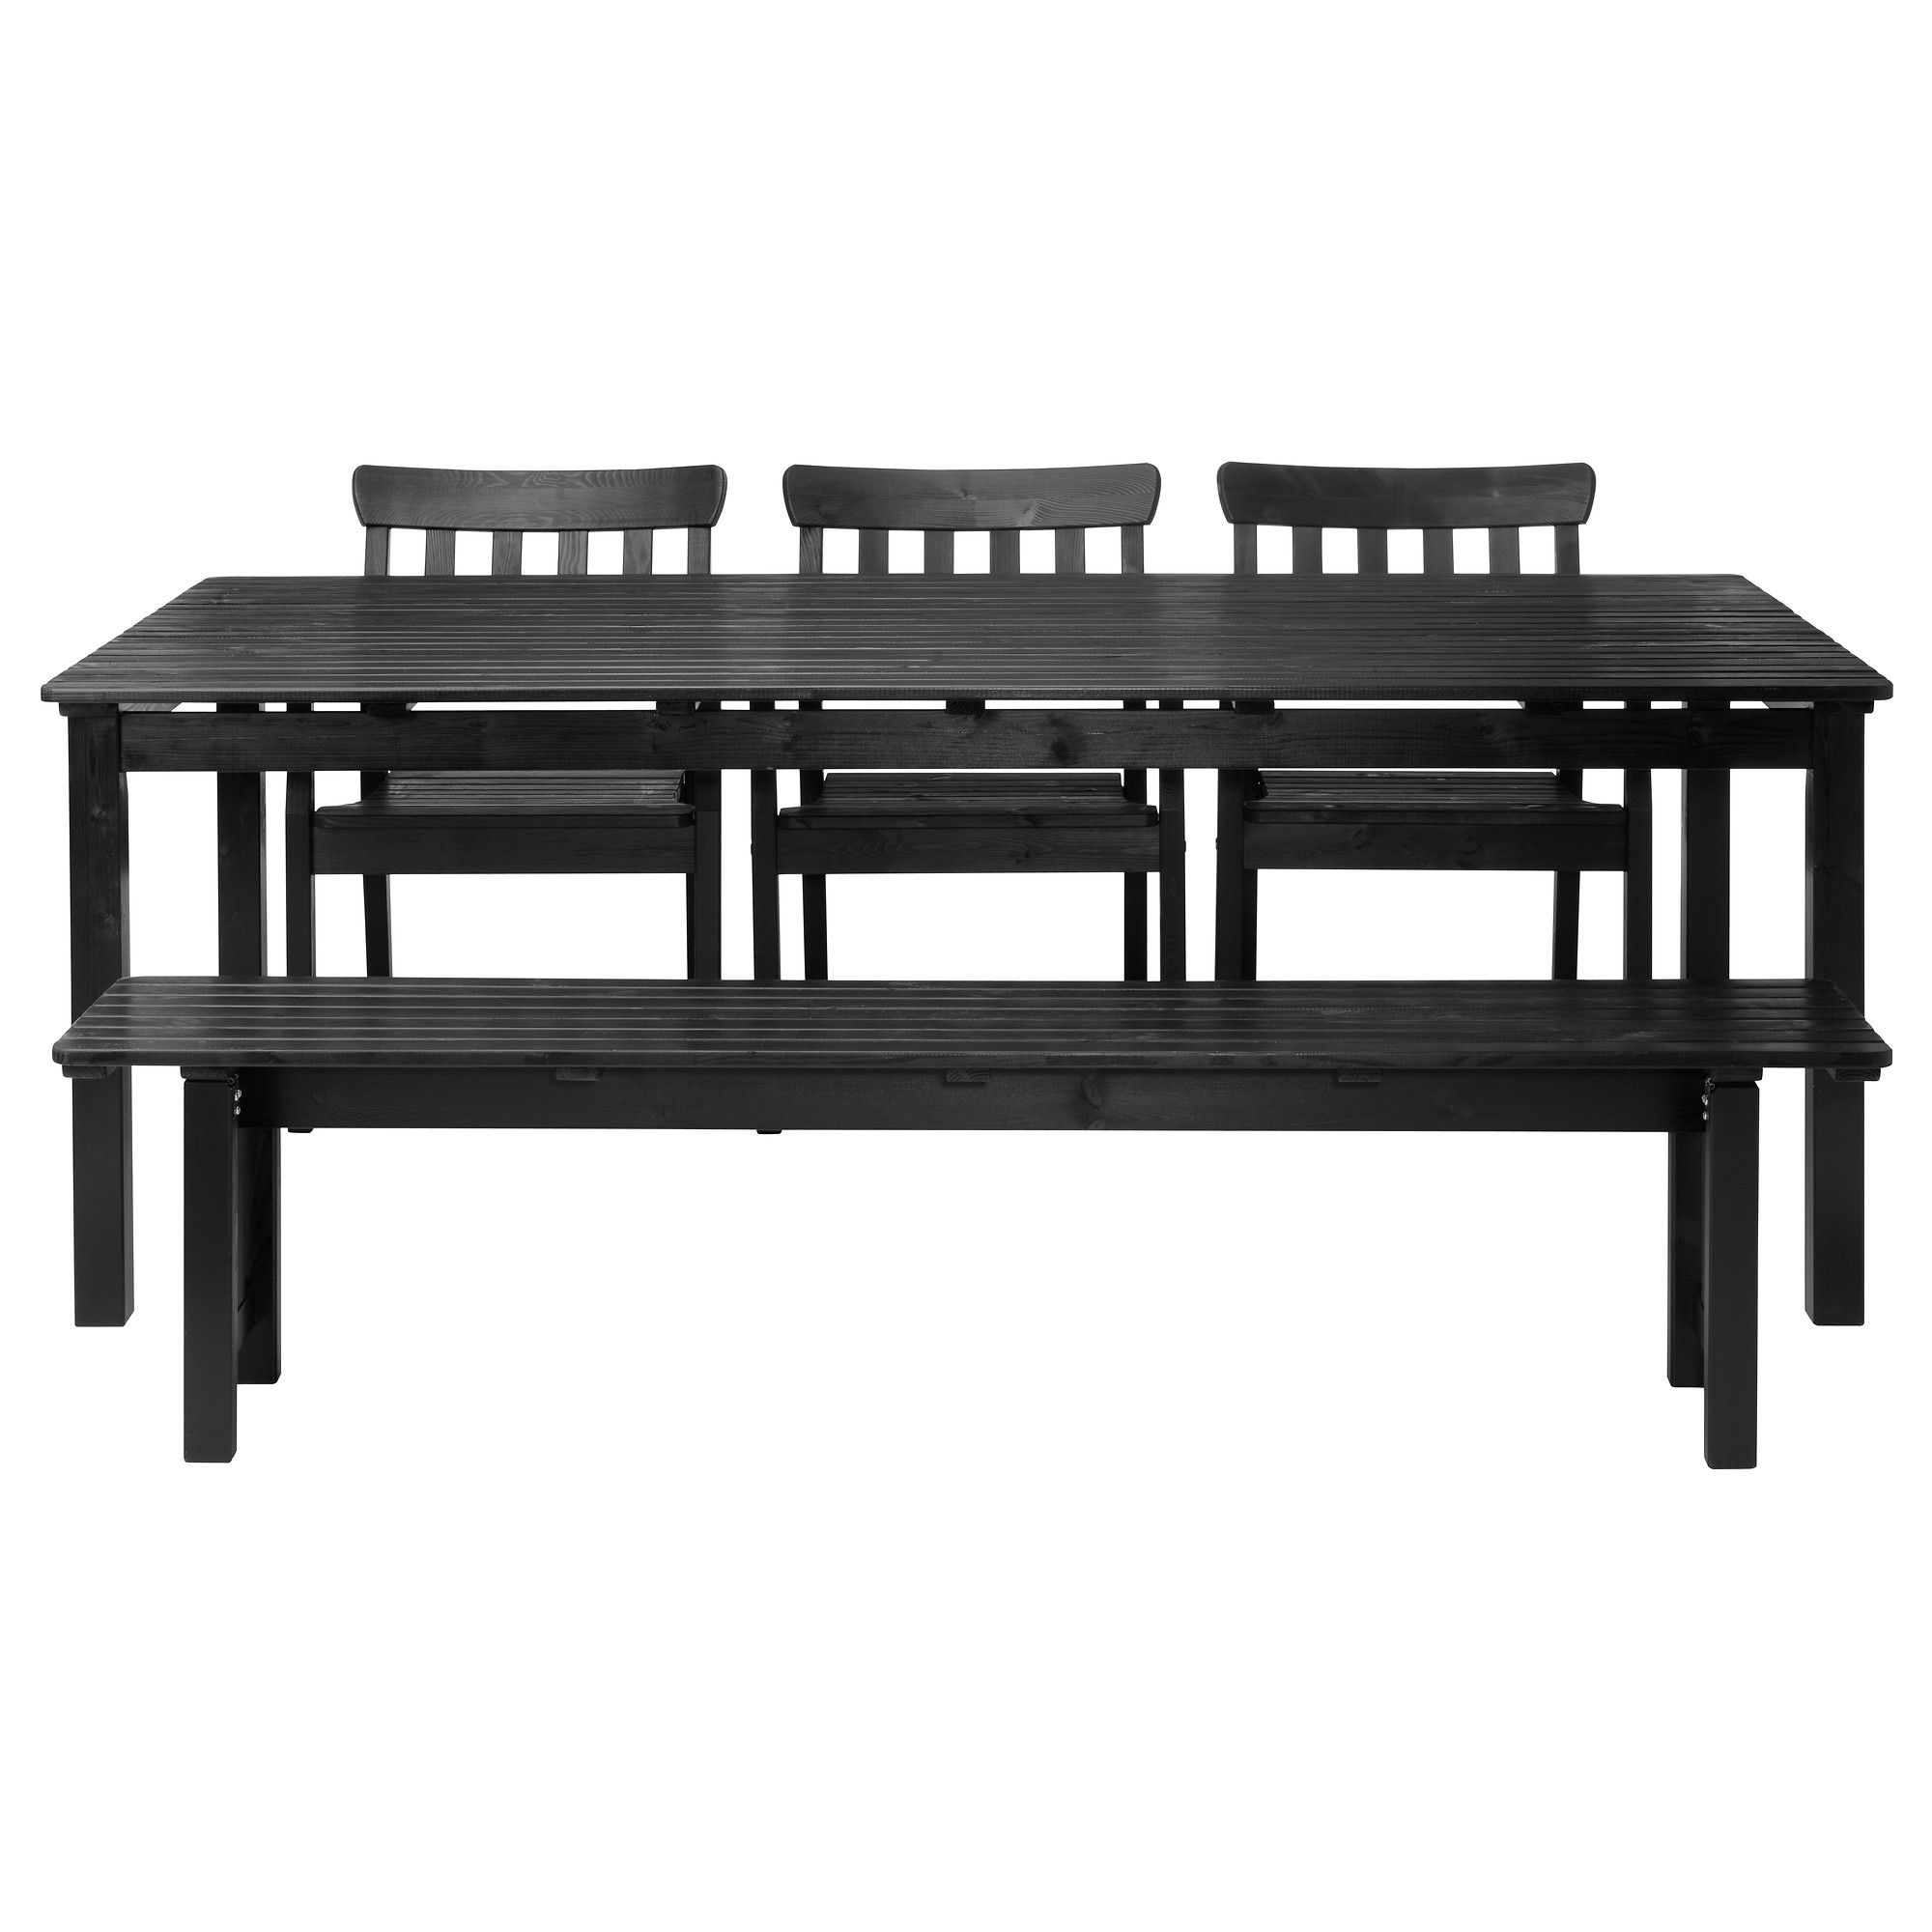 Black Bench For Dining Table: US - Furniture And Home Furnishings